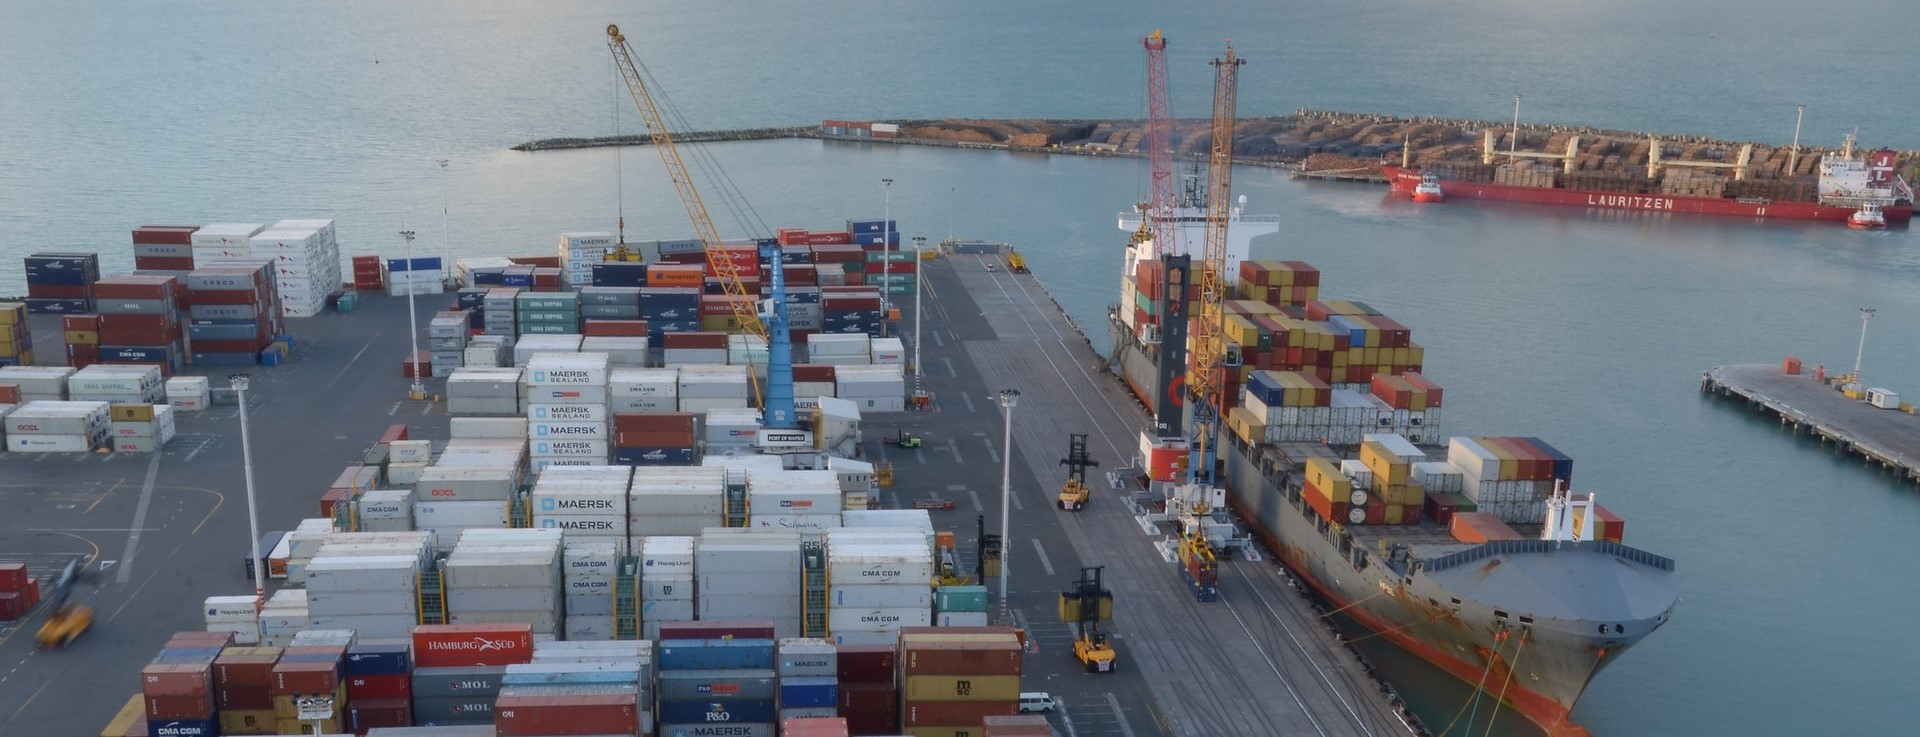 Ship docked to receive shipping containers